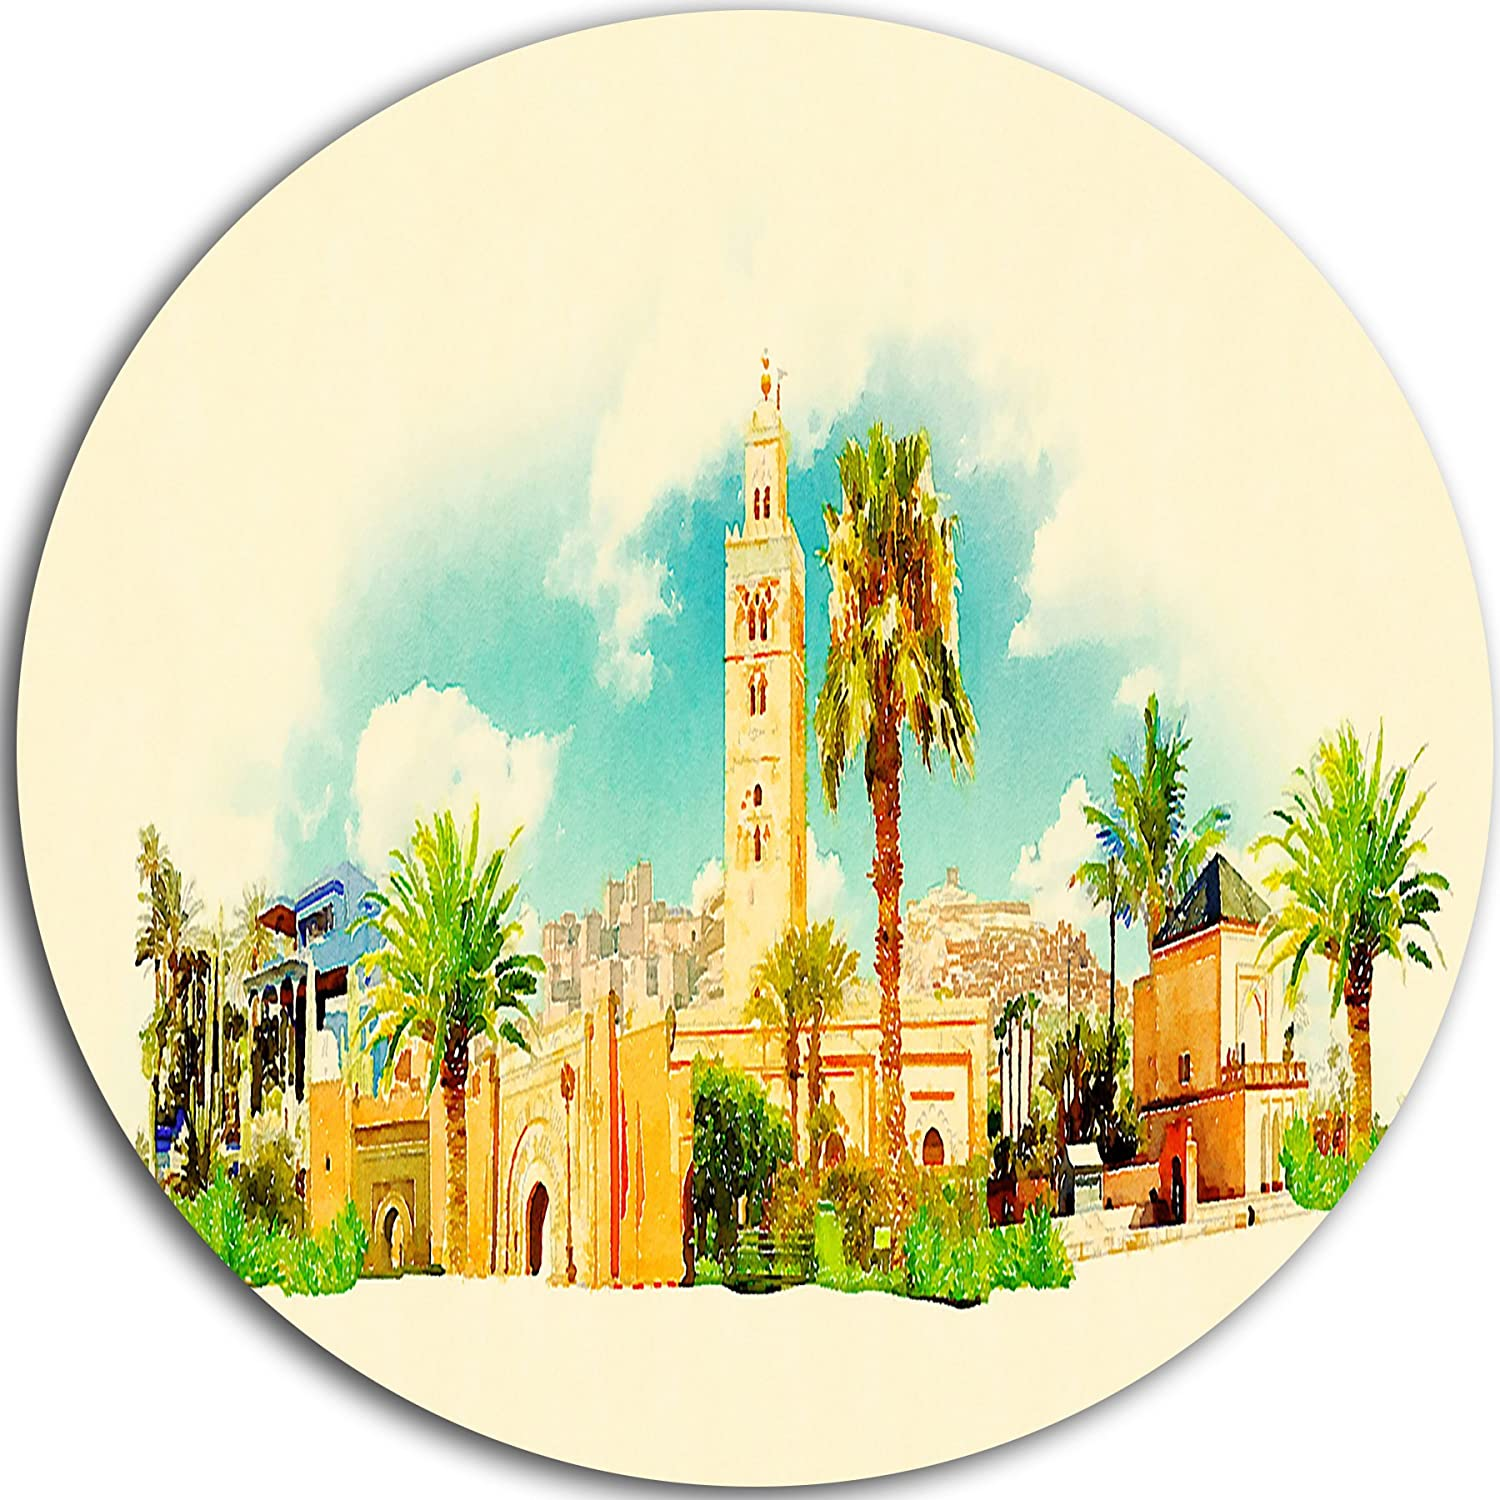 23 H x 23 W x 1 D 1P Green//Gold Cityscape Watercolor Large Disc Metal Wall Art MT7377-C23-Disc of 23 inch Designart Marakesh Panoramic View